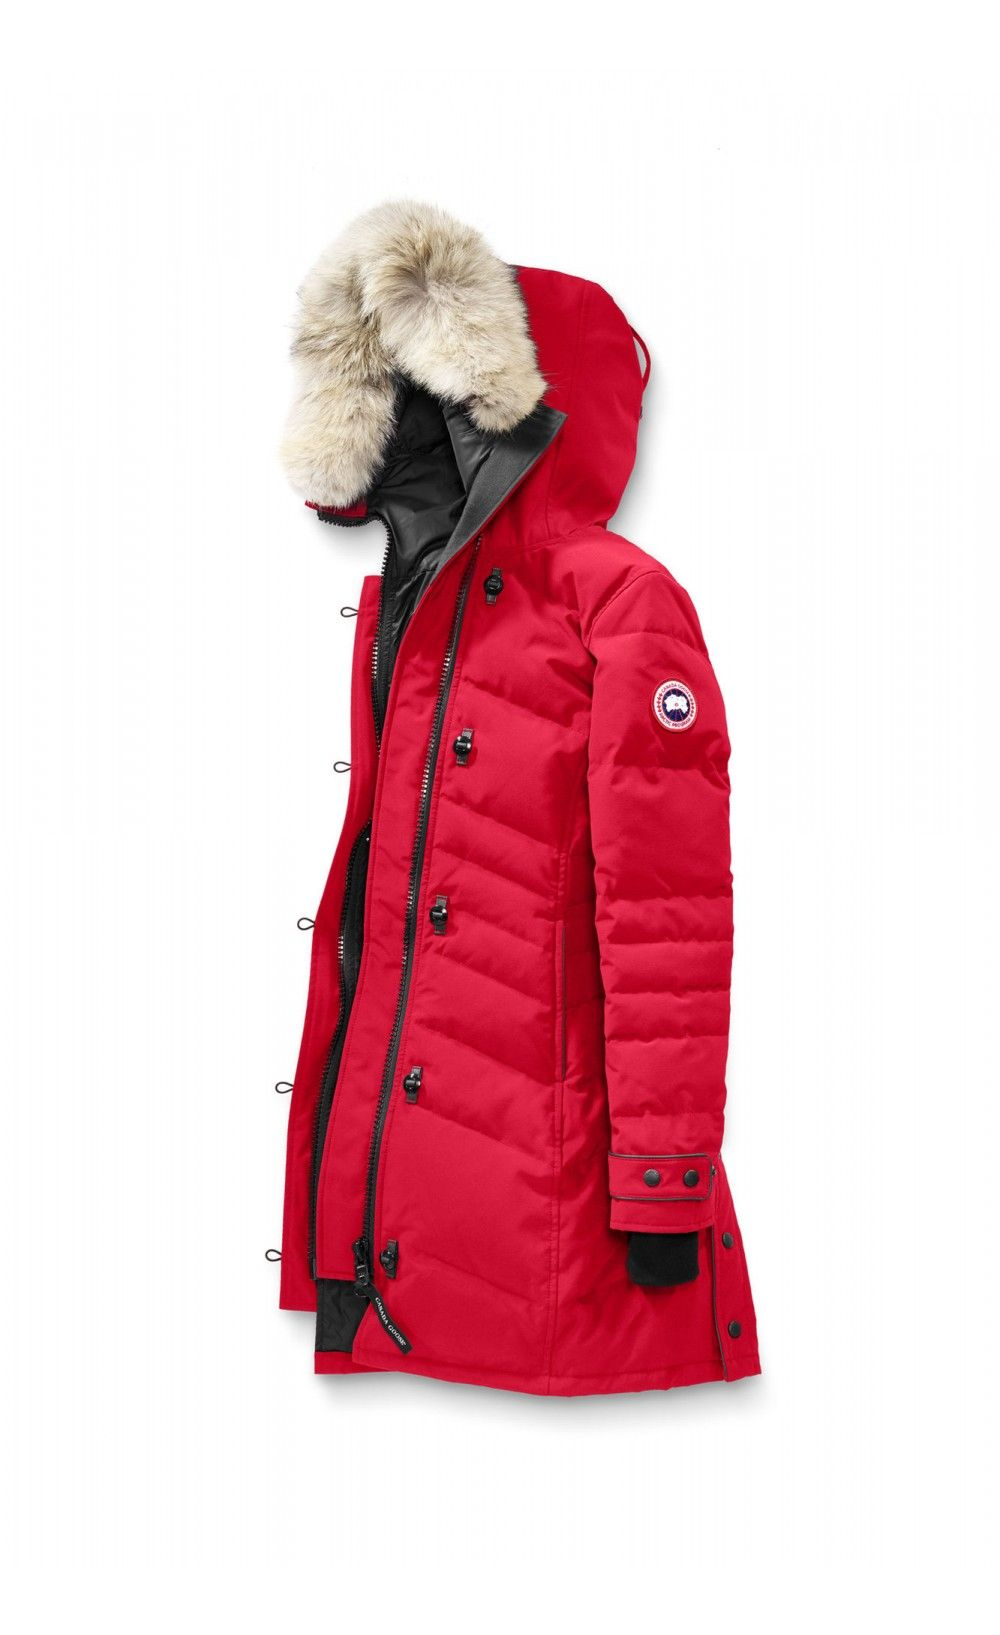 Canada Goose Lorette Parka Red Women - Canada Goose  canadagoose  women   streetstyle  parka  lifestyle  jacket  outlet 42fe57186704